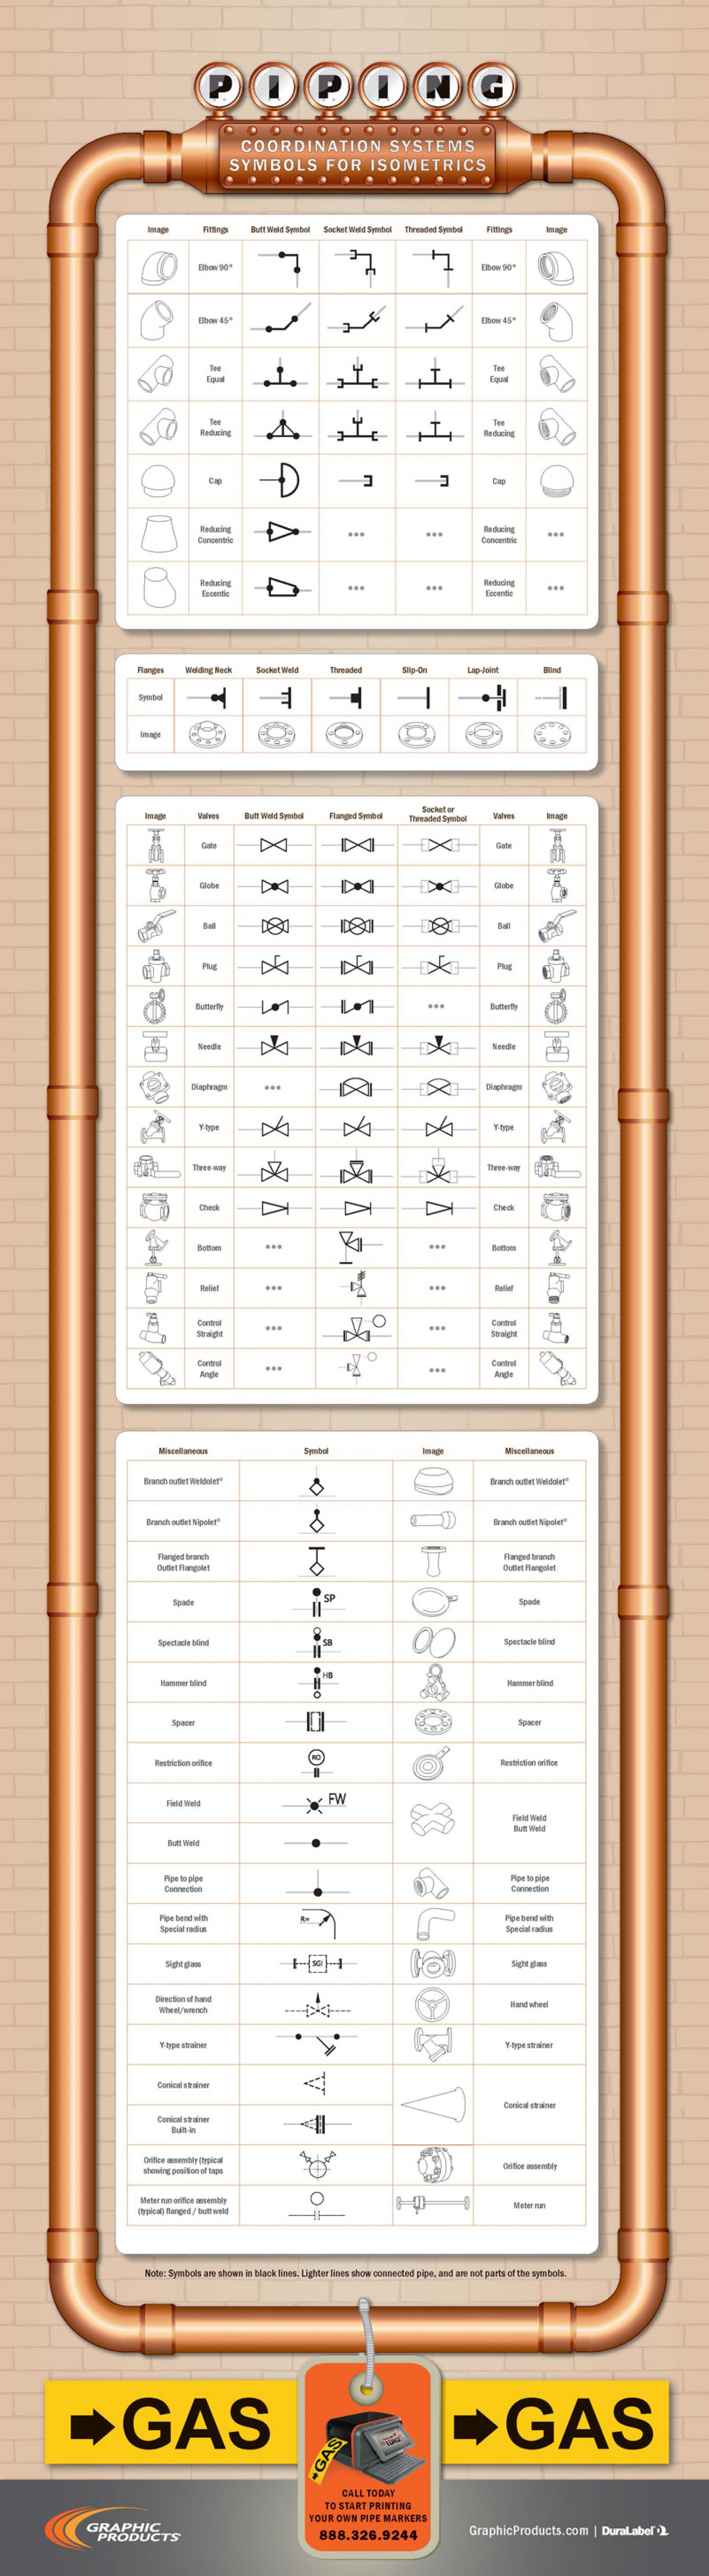 Pipe Fittings Infographic